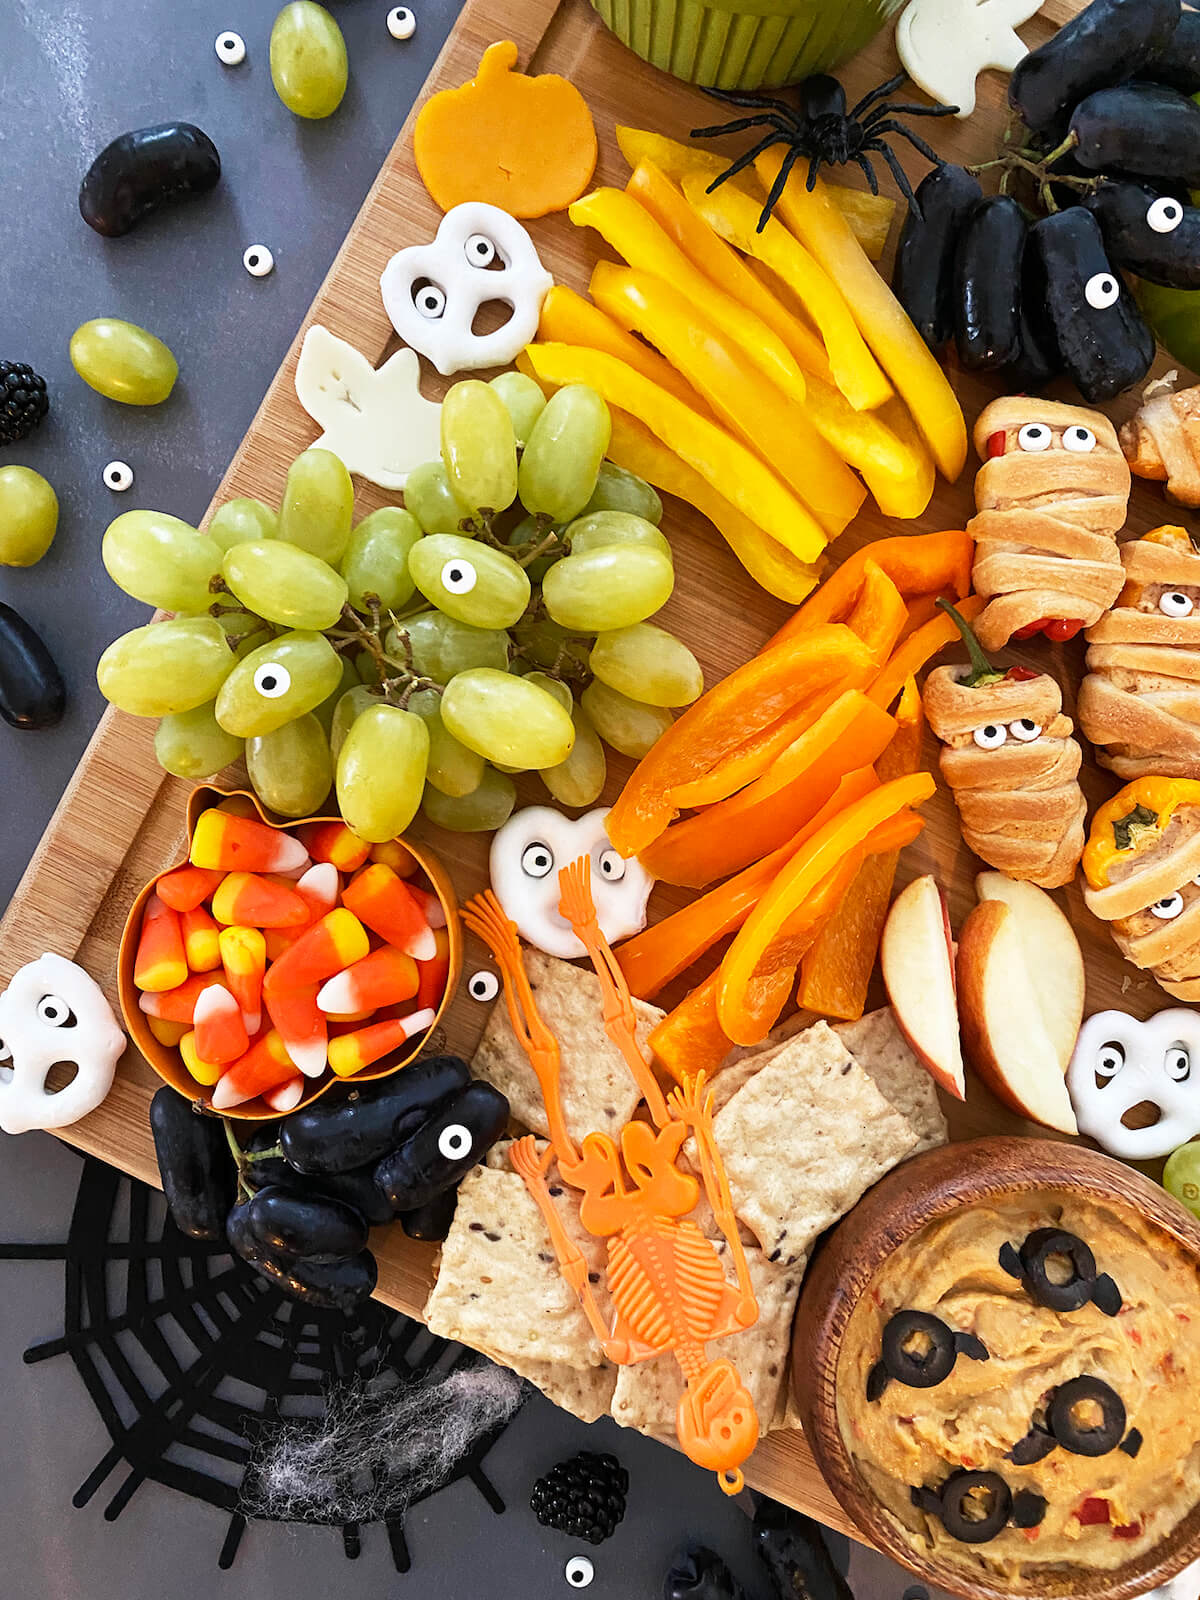 Web halloween snack board close up 50 easy halloween party finger foods, treats & appetiser ideas